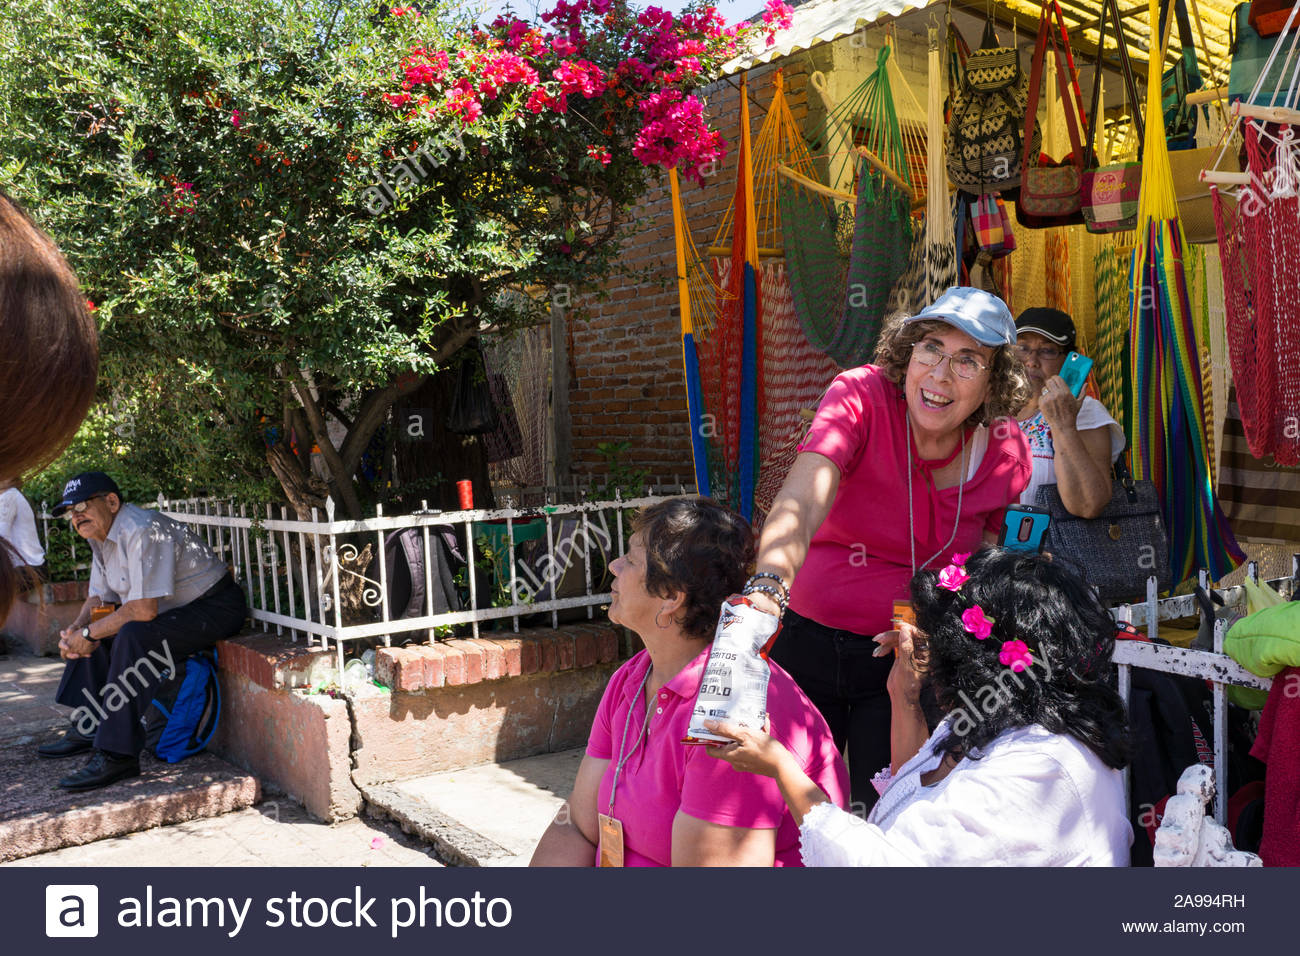 Women watching a performance at Xochimilco, Mexico City, with market goods in the background. Stock Photo